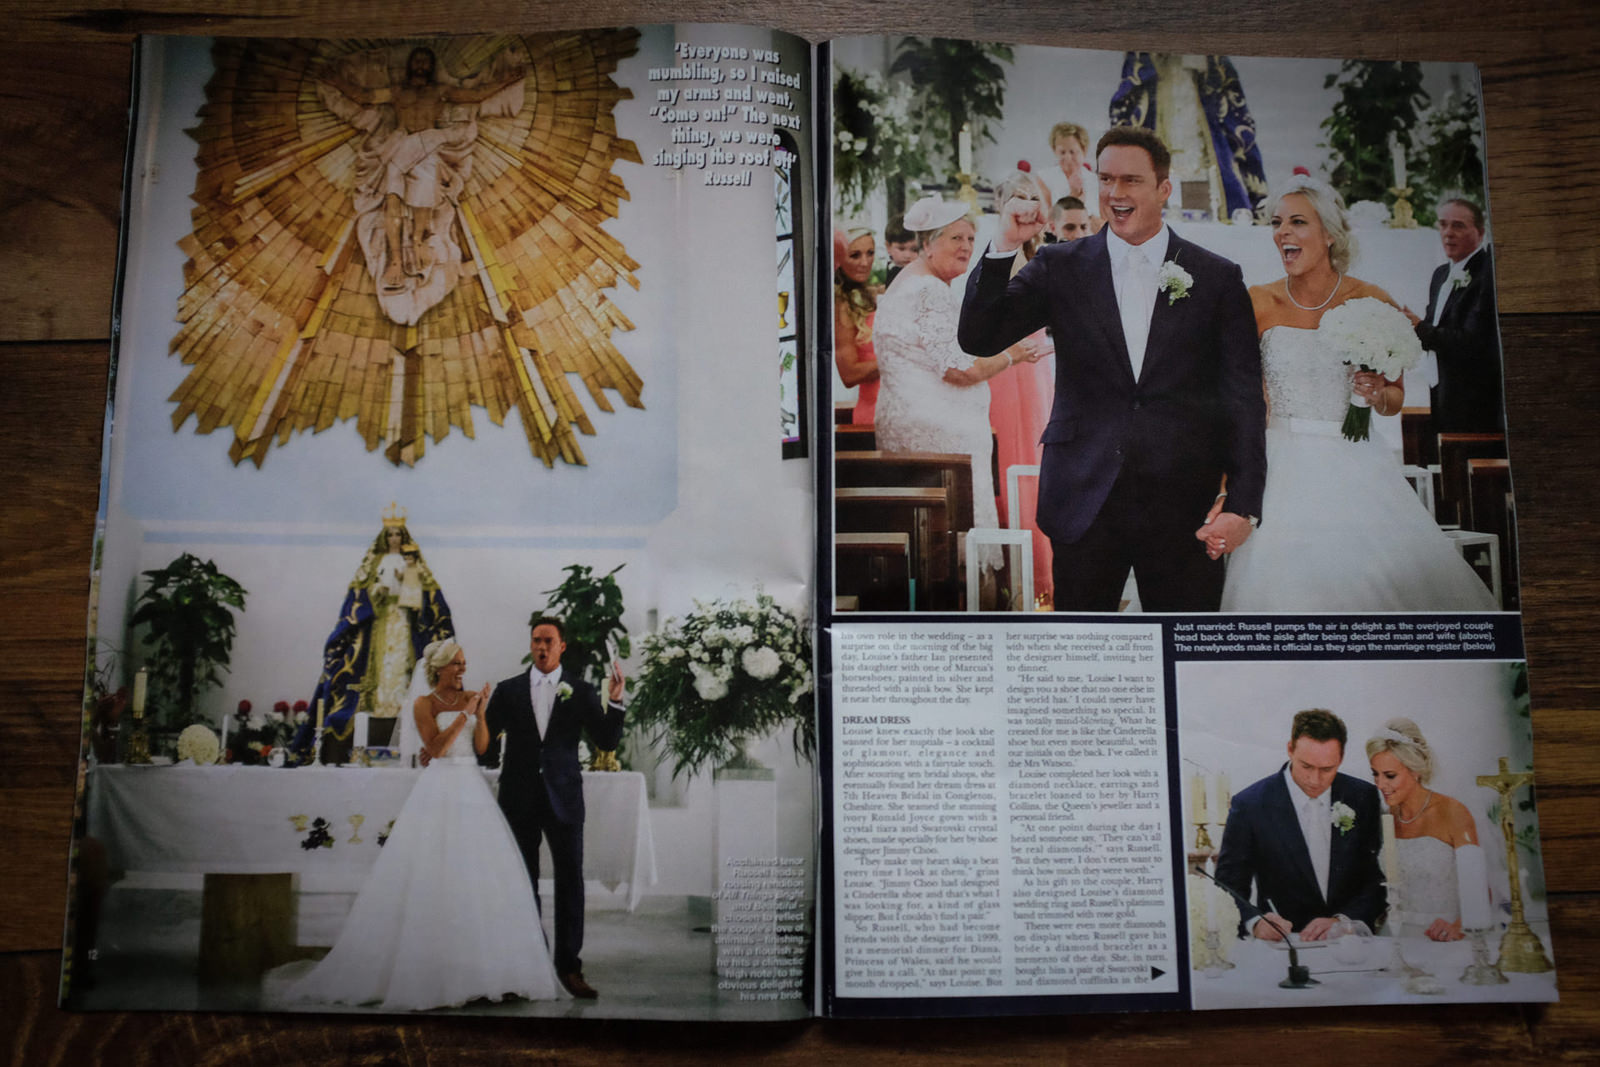 Russell-Watson-Wedding-Hello-Magazine-by-Wes-Simpson-wedding-Photographer-3